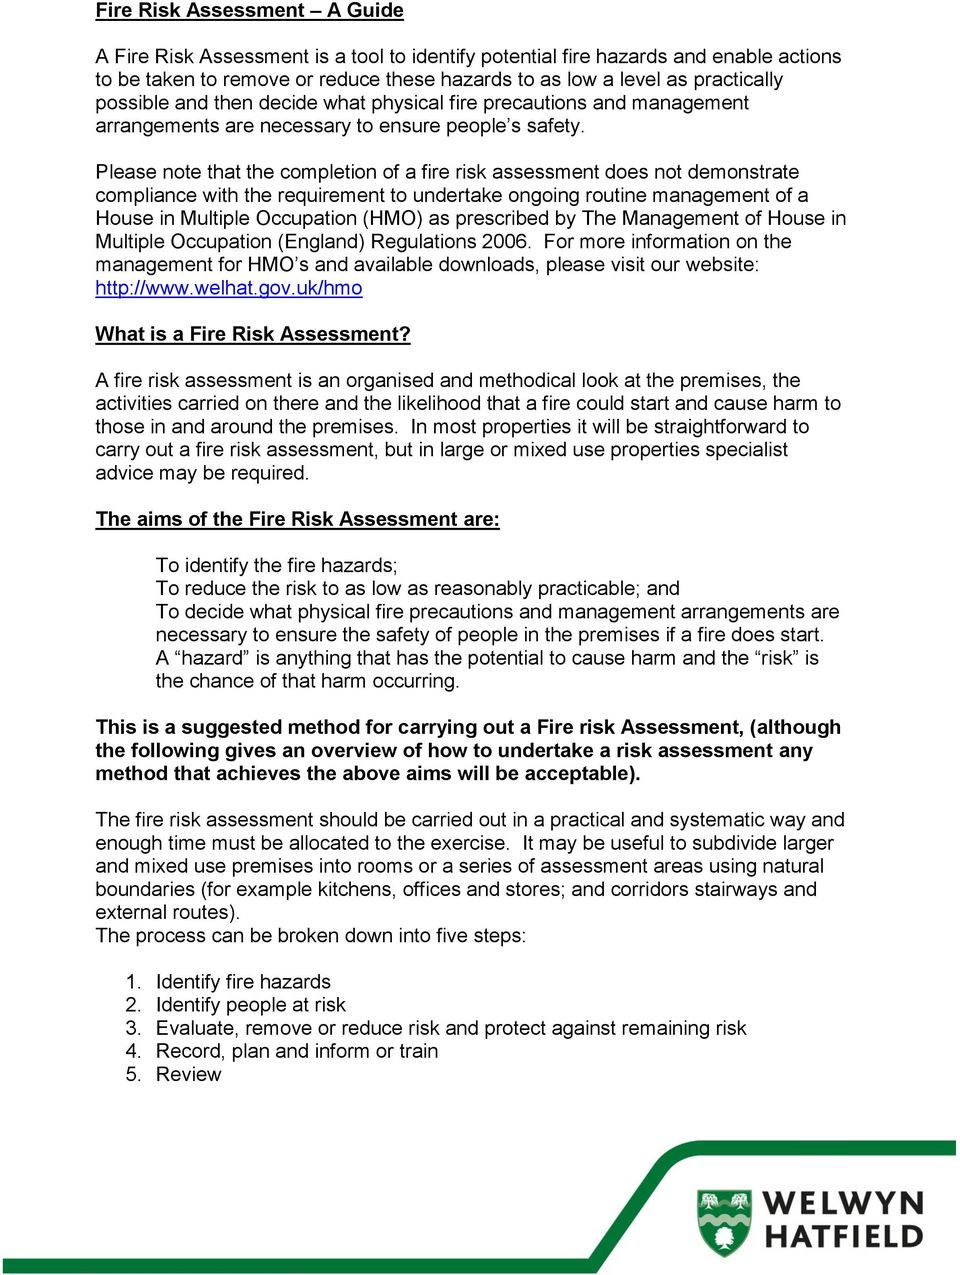 Please note that the completion of a fire risk assessment does not demonstrate compliance with the requirement to undertake ongoing routine management of a House in Multiple Occupation (HMO) as